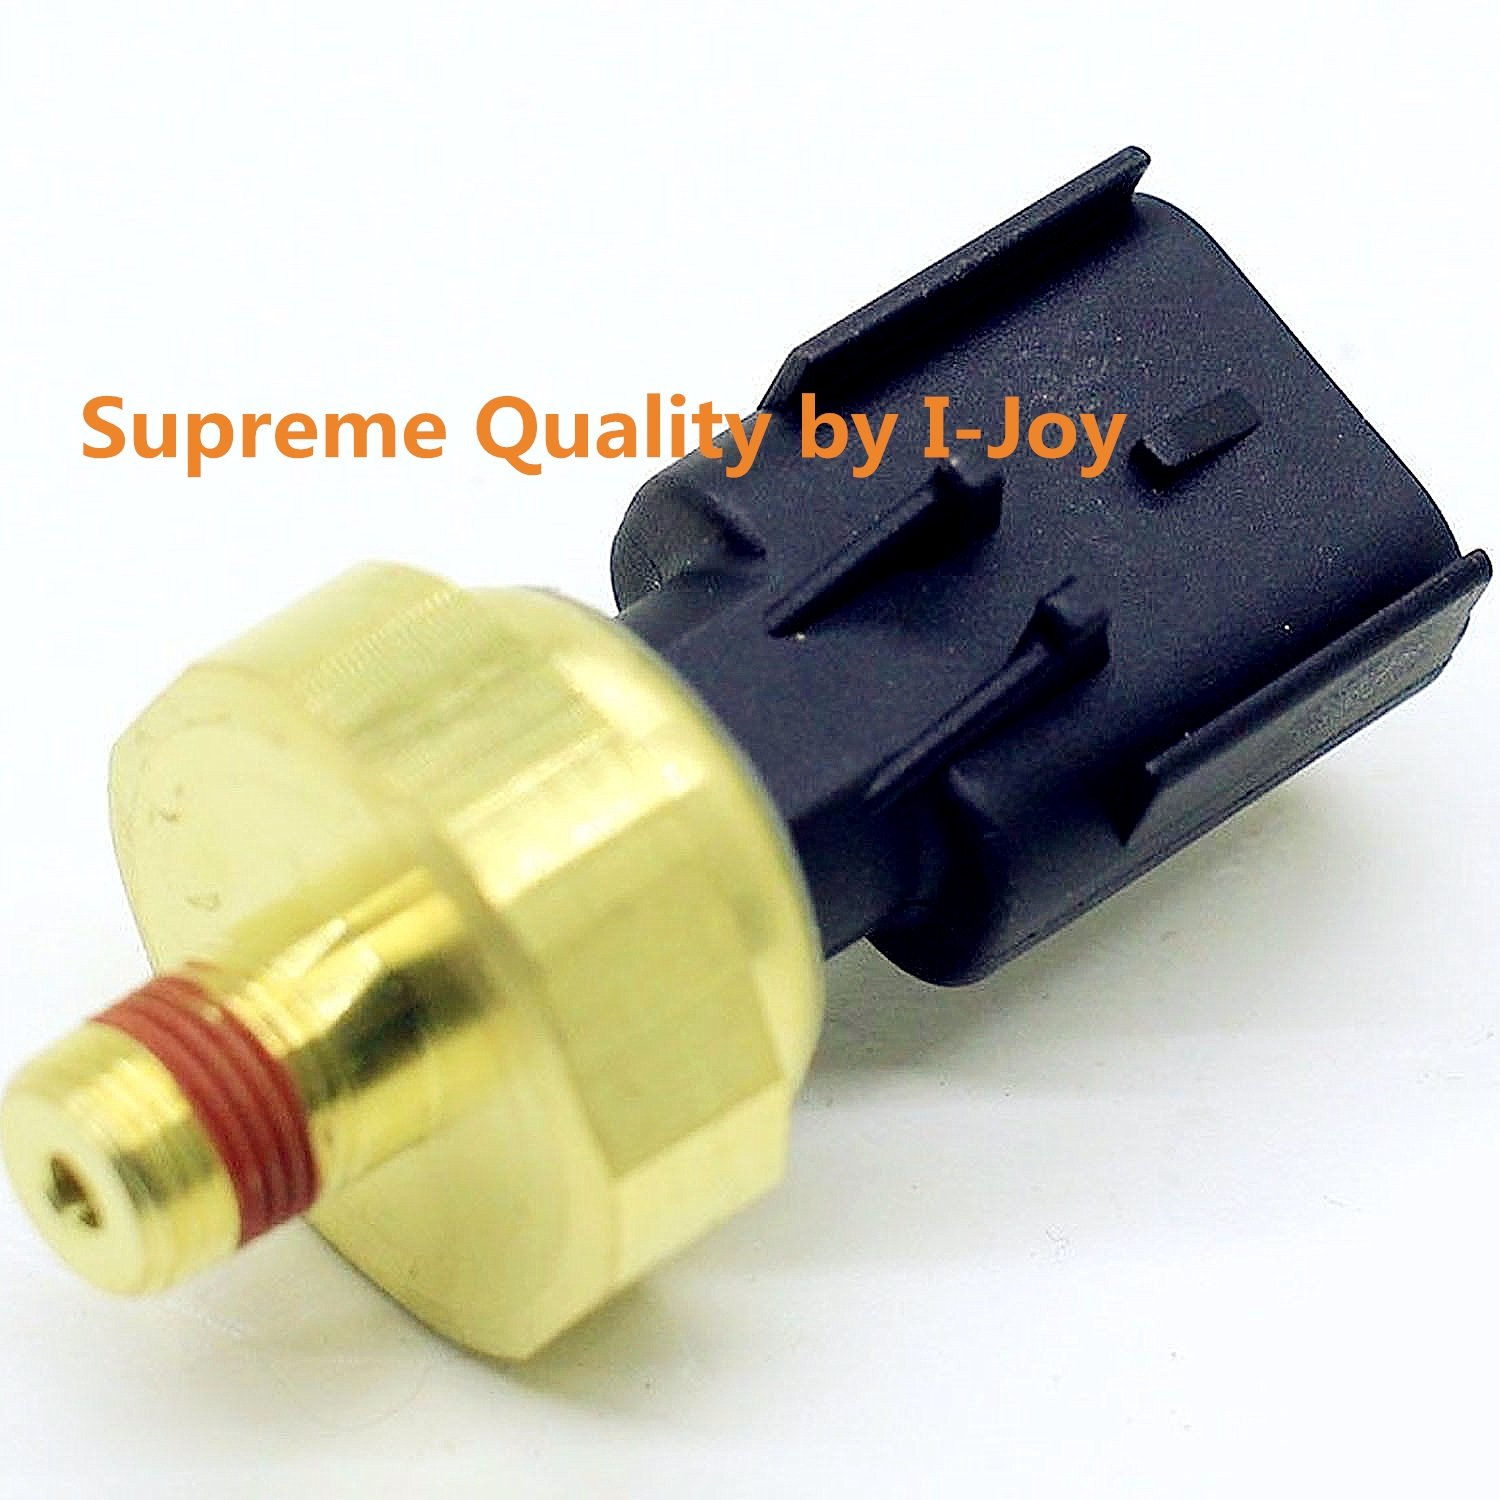 05149062AA Engine Oil Pressure Sensor Switch for Chrysler Dodge RAM Jeep Top Quality 100% New by I-Joy